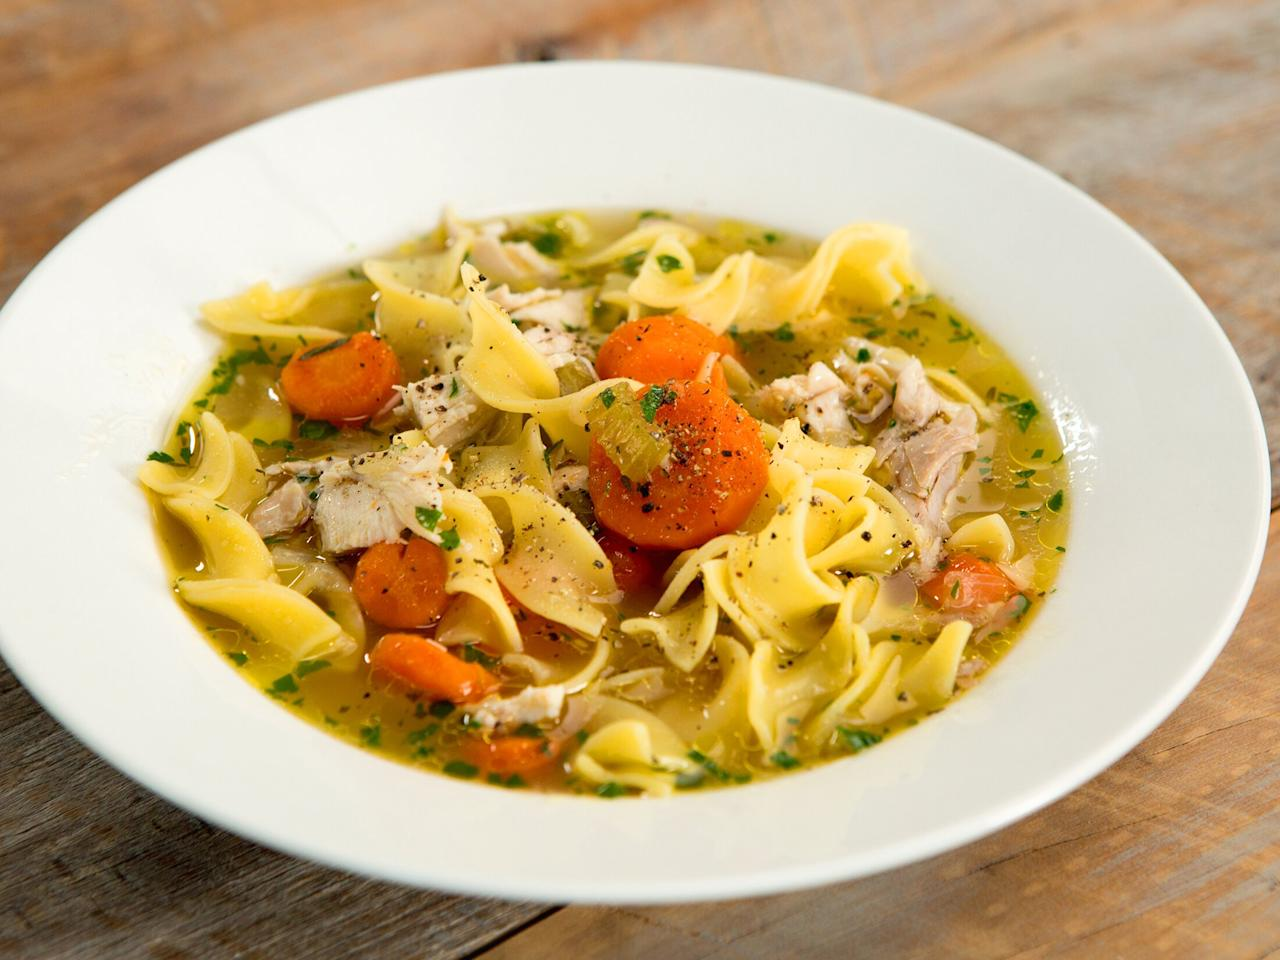 """<p>This chicken noodle soup may be simple, but nothing's wrong with that. Your Instant Pot or pressure cooker of choice makes this comforting and savory classic in just an hour. </p> <p><a href=""""https://www.myrecipes.com/recipe/instant-pot-chicken-soup"""">Instant Pot Chicken Soup Recipe</a></p>"""